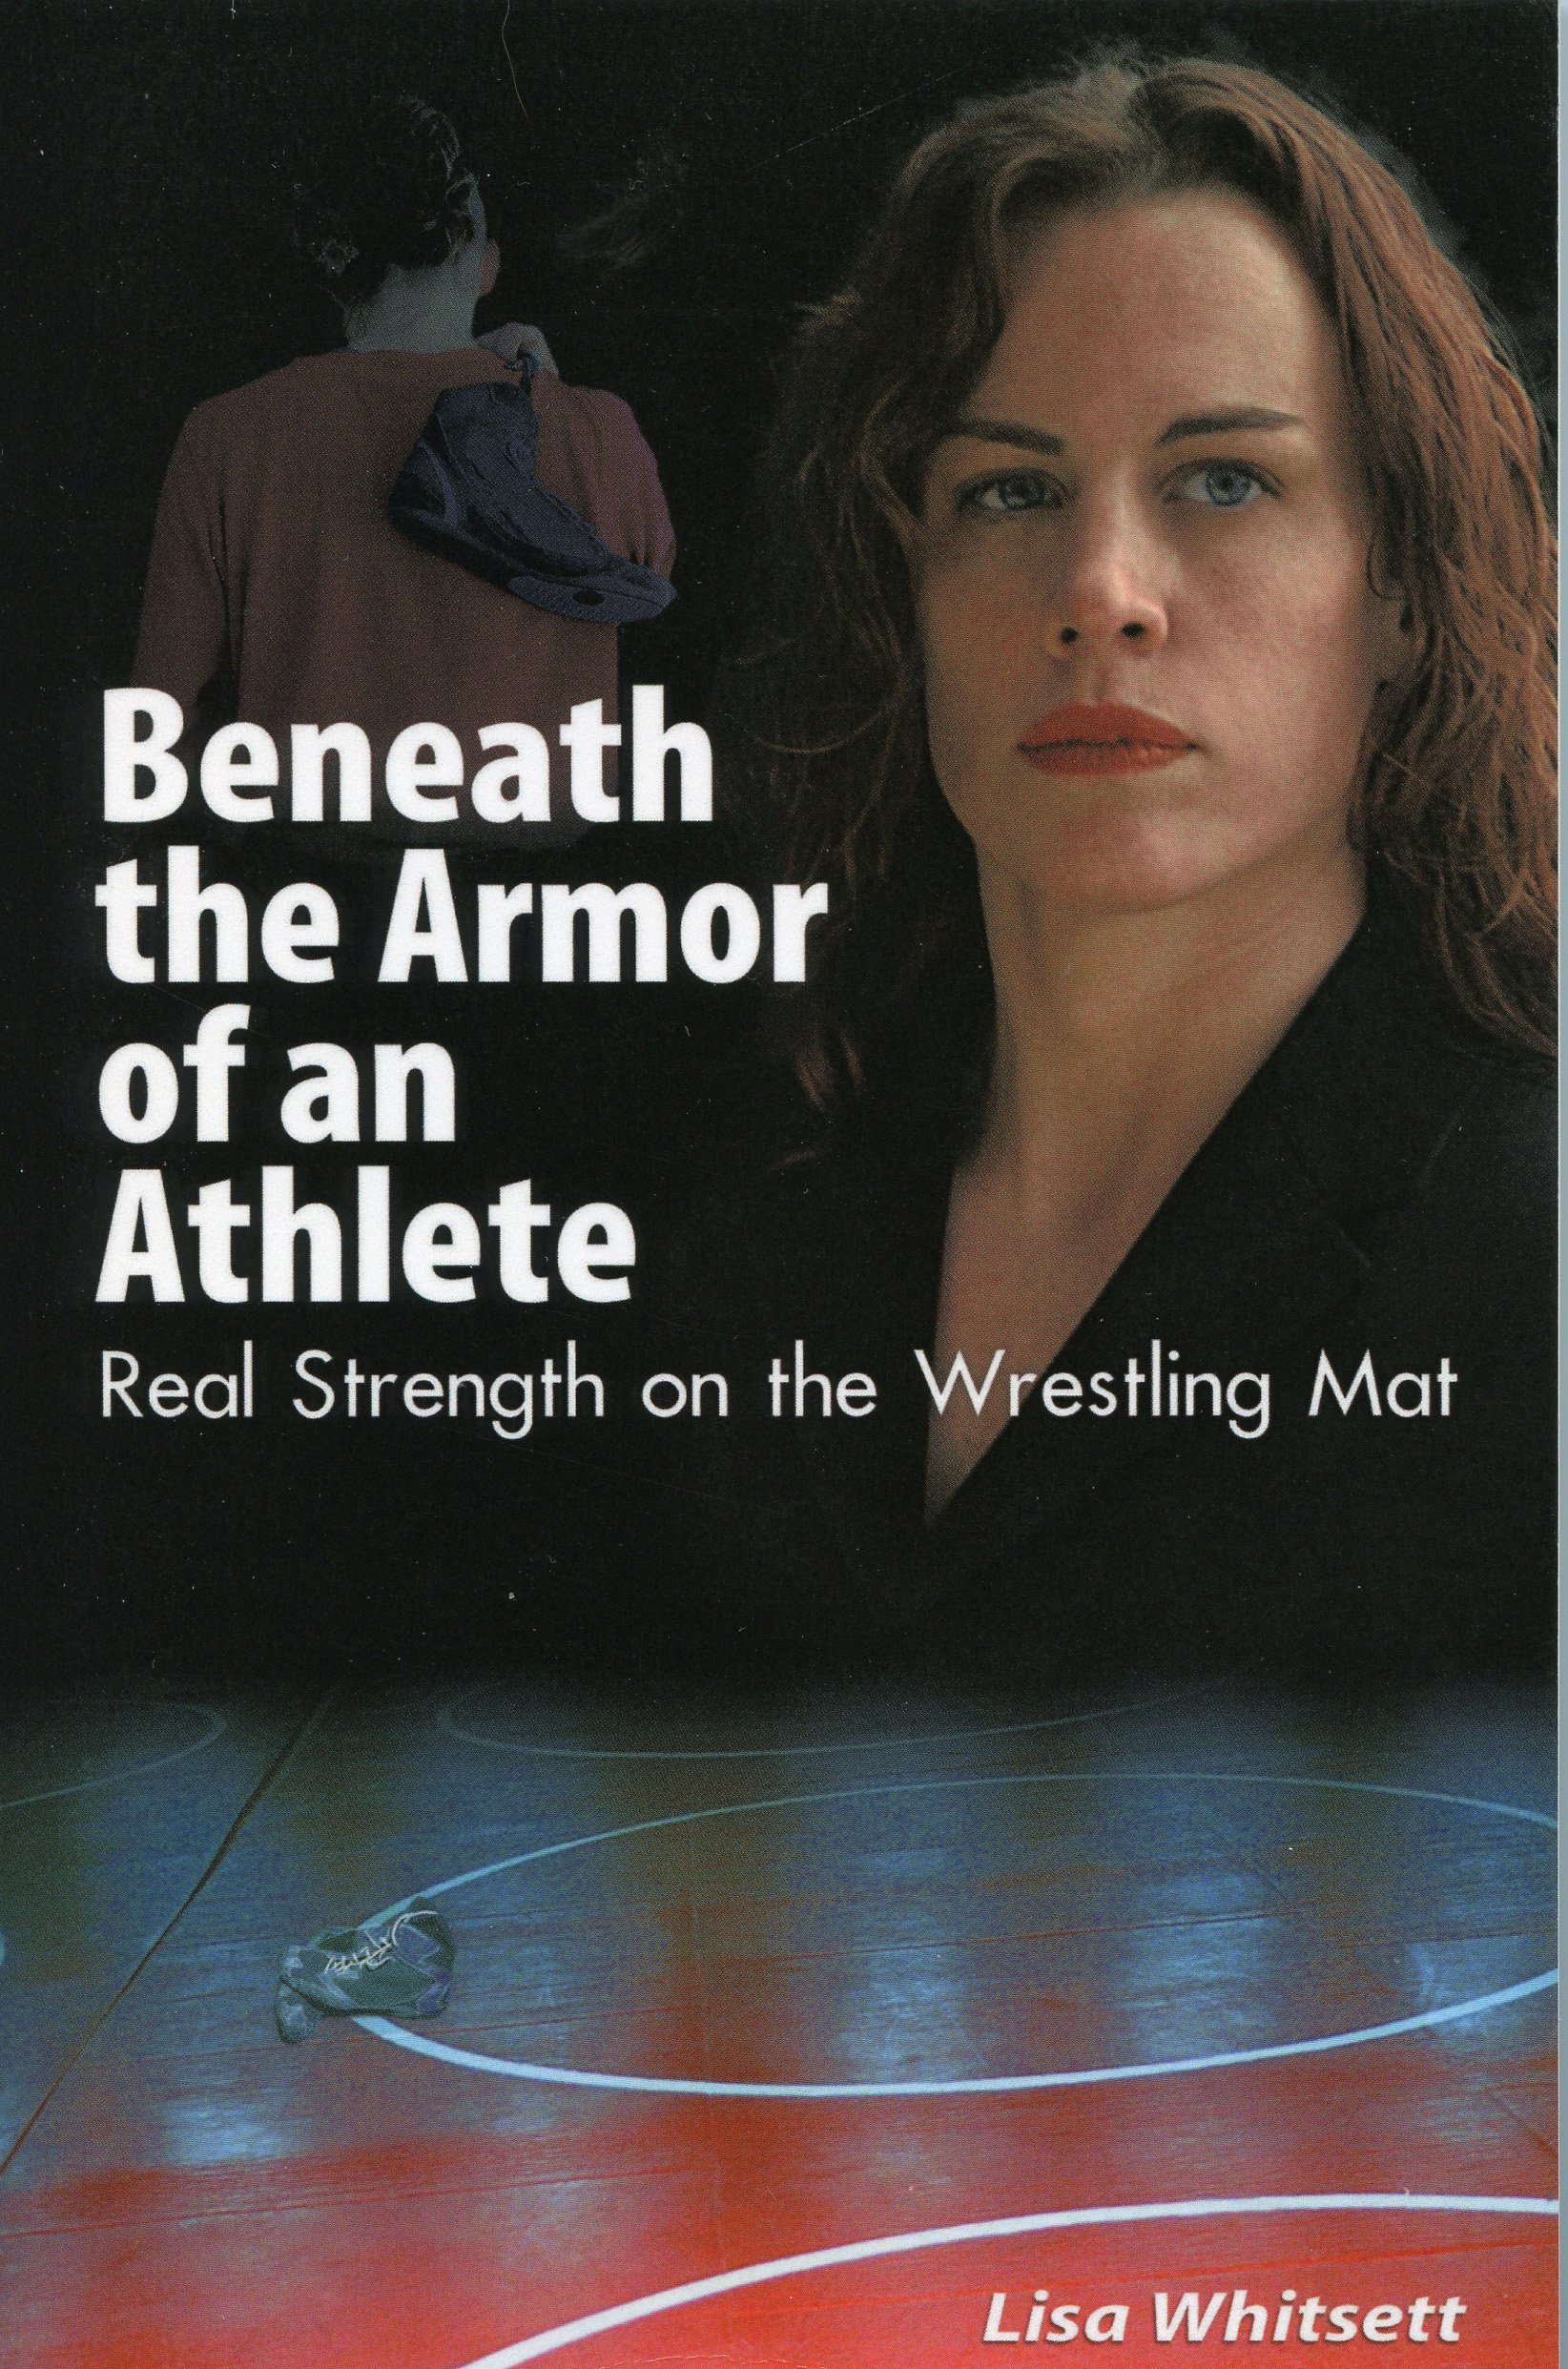 """This searing confessional reads like a novel and is just as suspenseful... Any female athlete would be interested in this story."" -- Library Journal  by Lisa Whitsett ISBN: 978-4-930546-63-9 $16.95 Published in 2003"